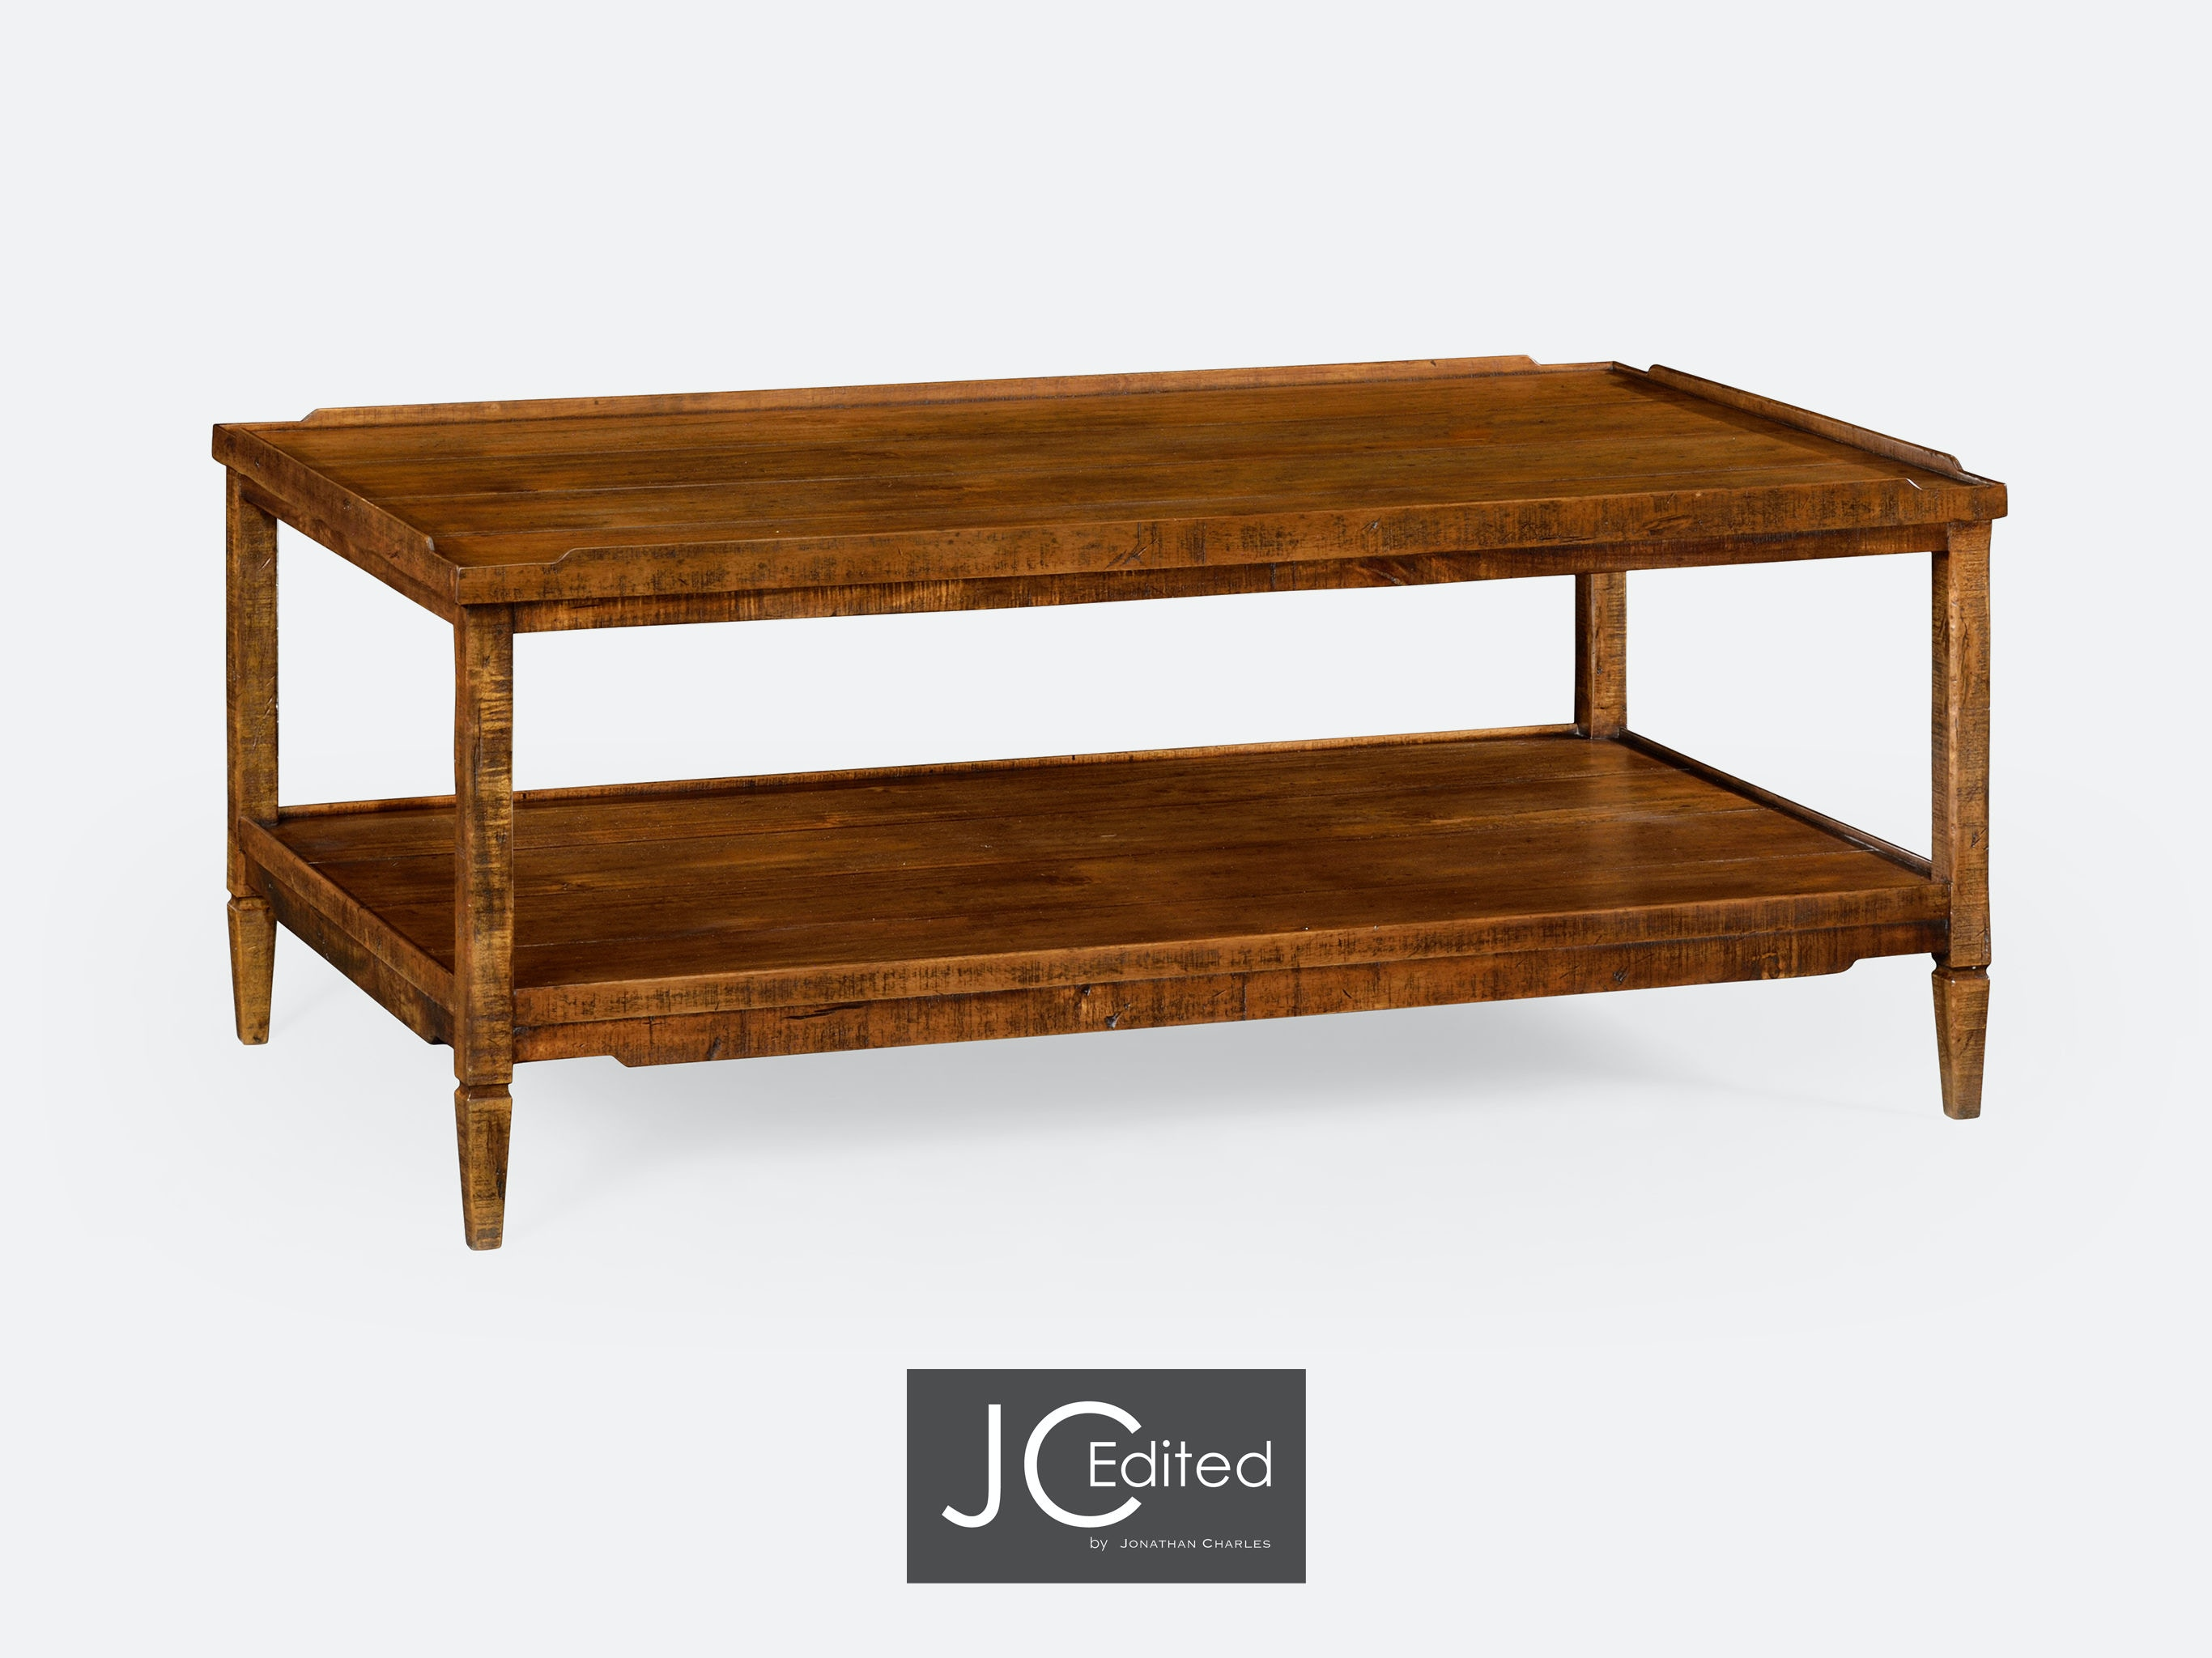 jonathan charles living room walnut country style coffee table qj491021cfw walter e smithe furniture design